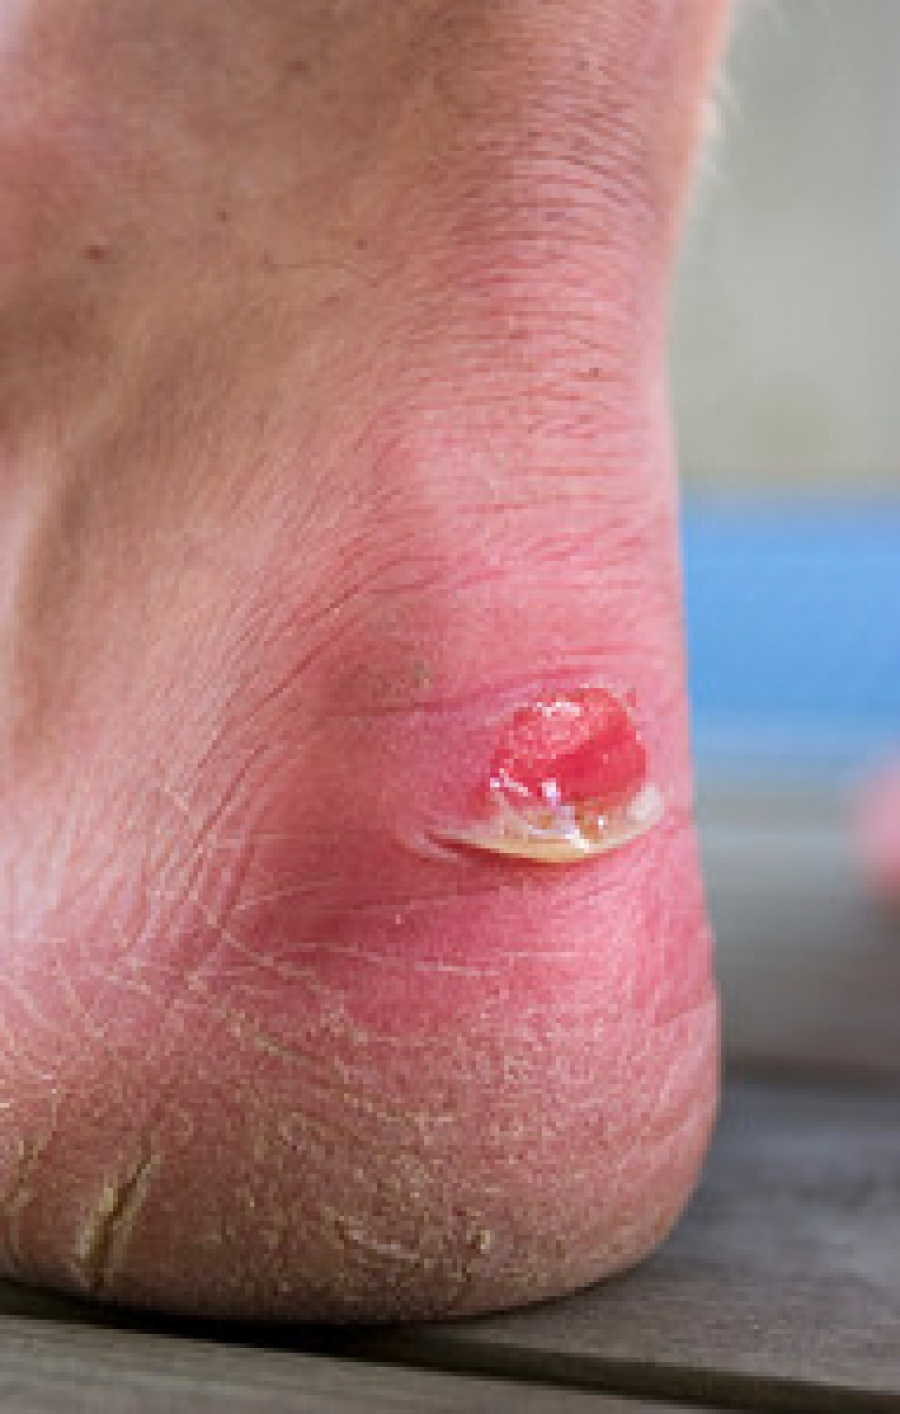 Causes Of Blisters